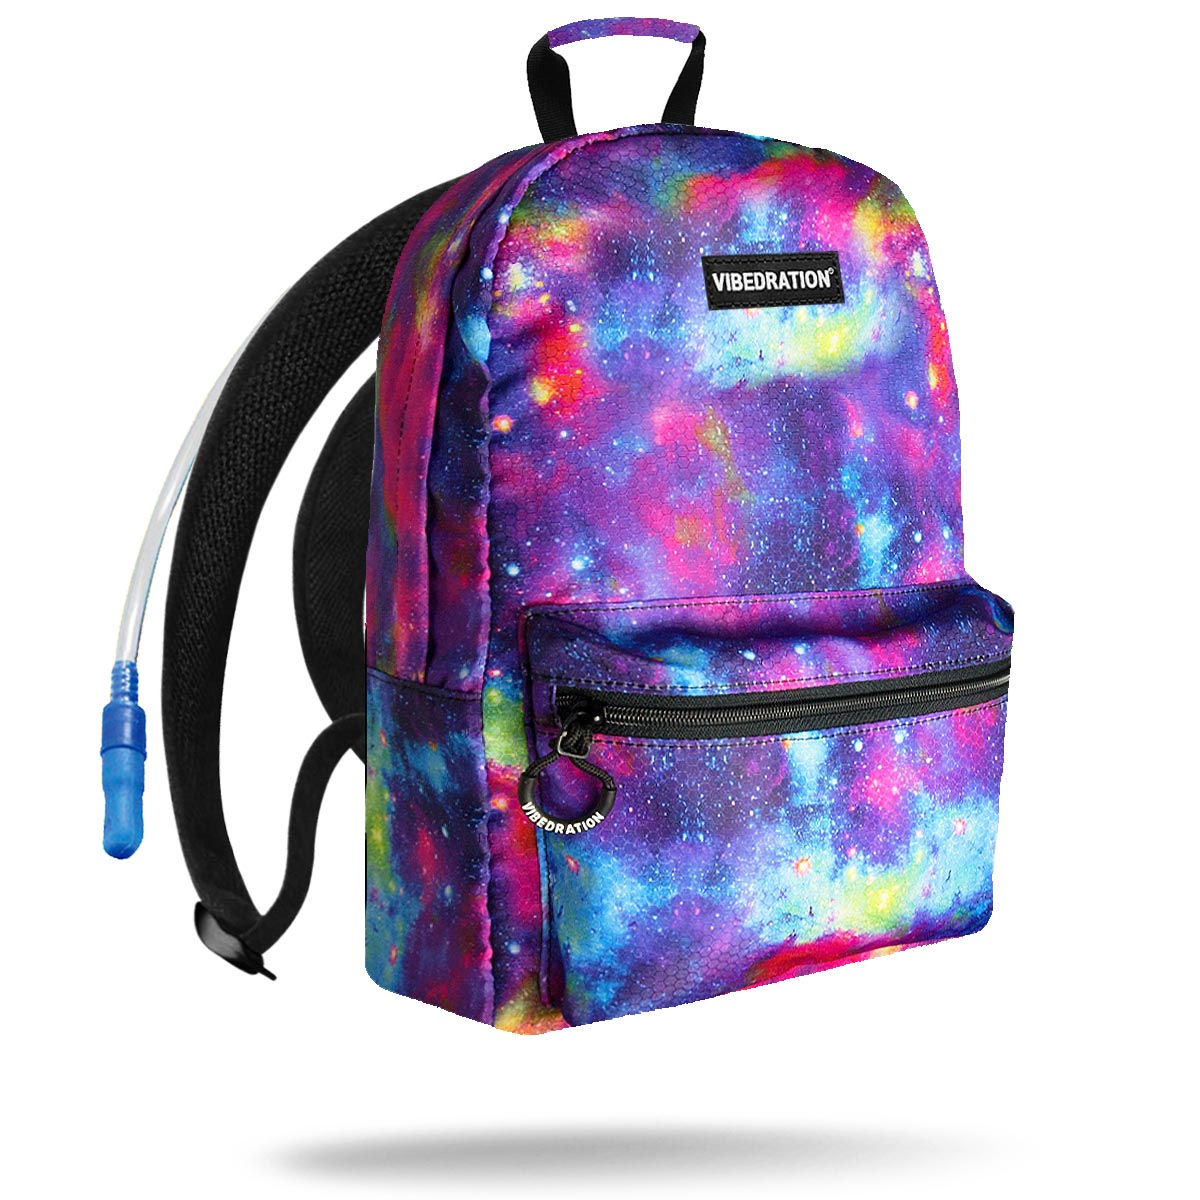 Large Hydration Backpack for Music Festivals